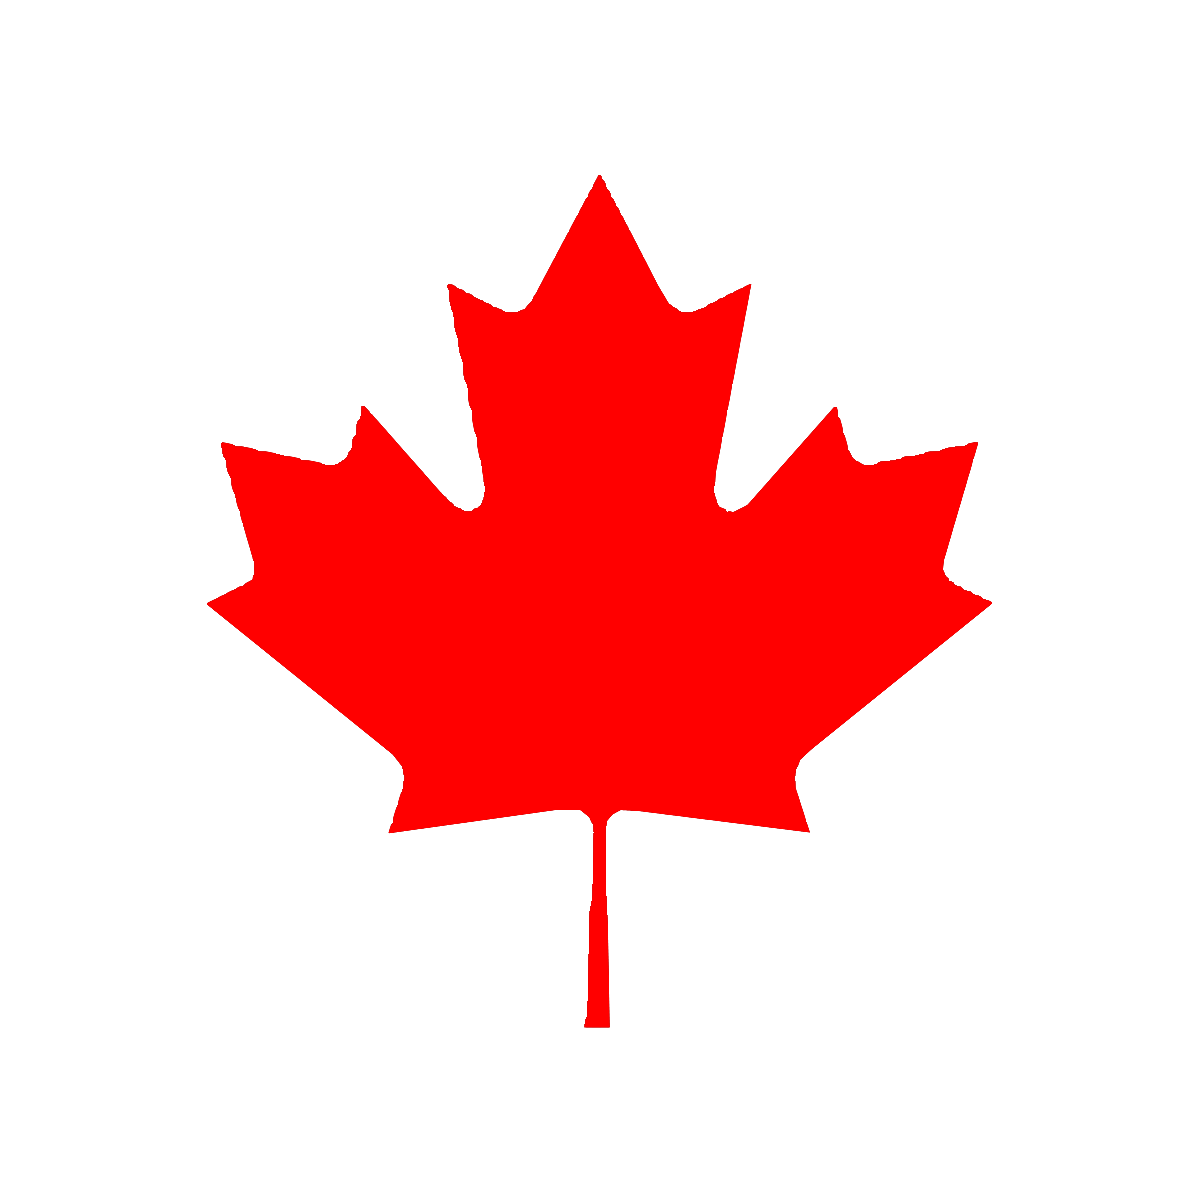 Red Maple Clipart Transparent Background.